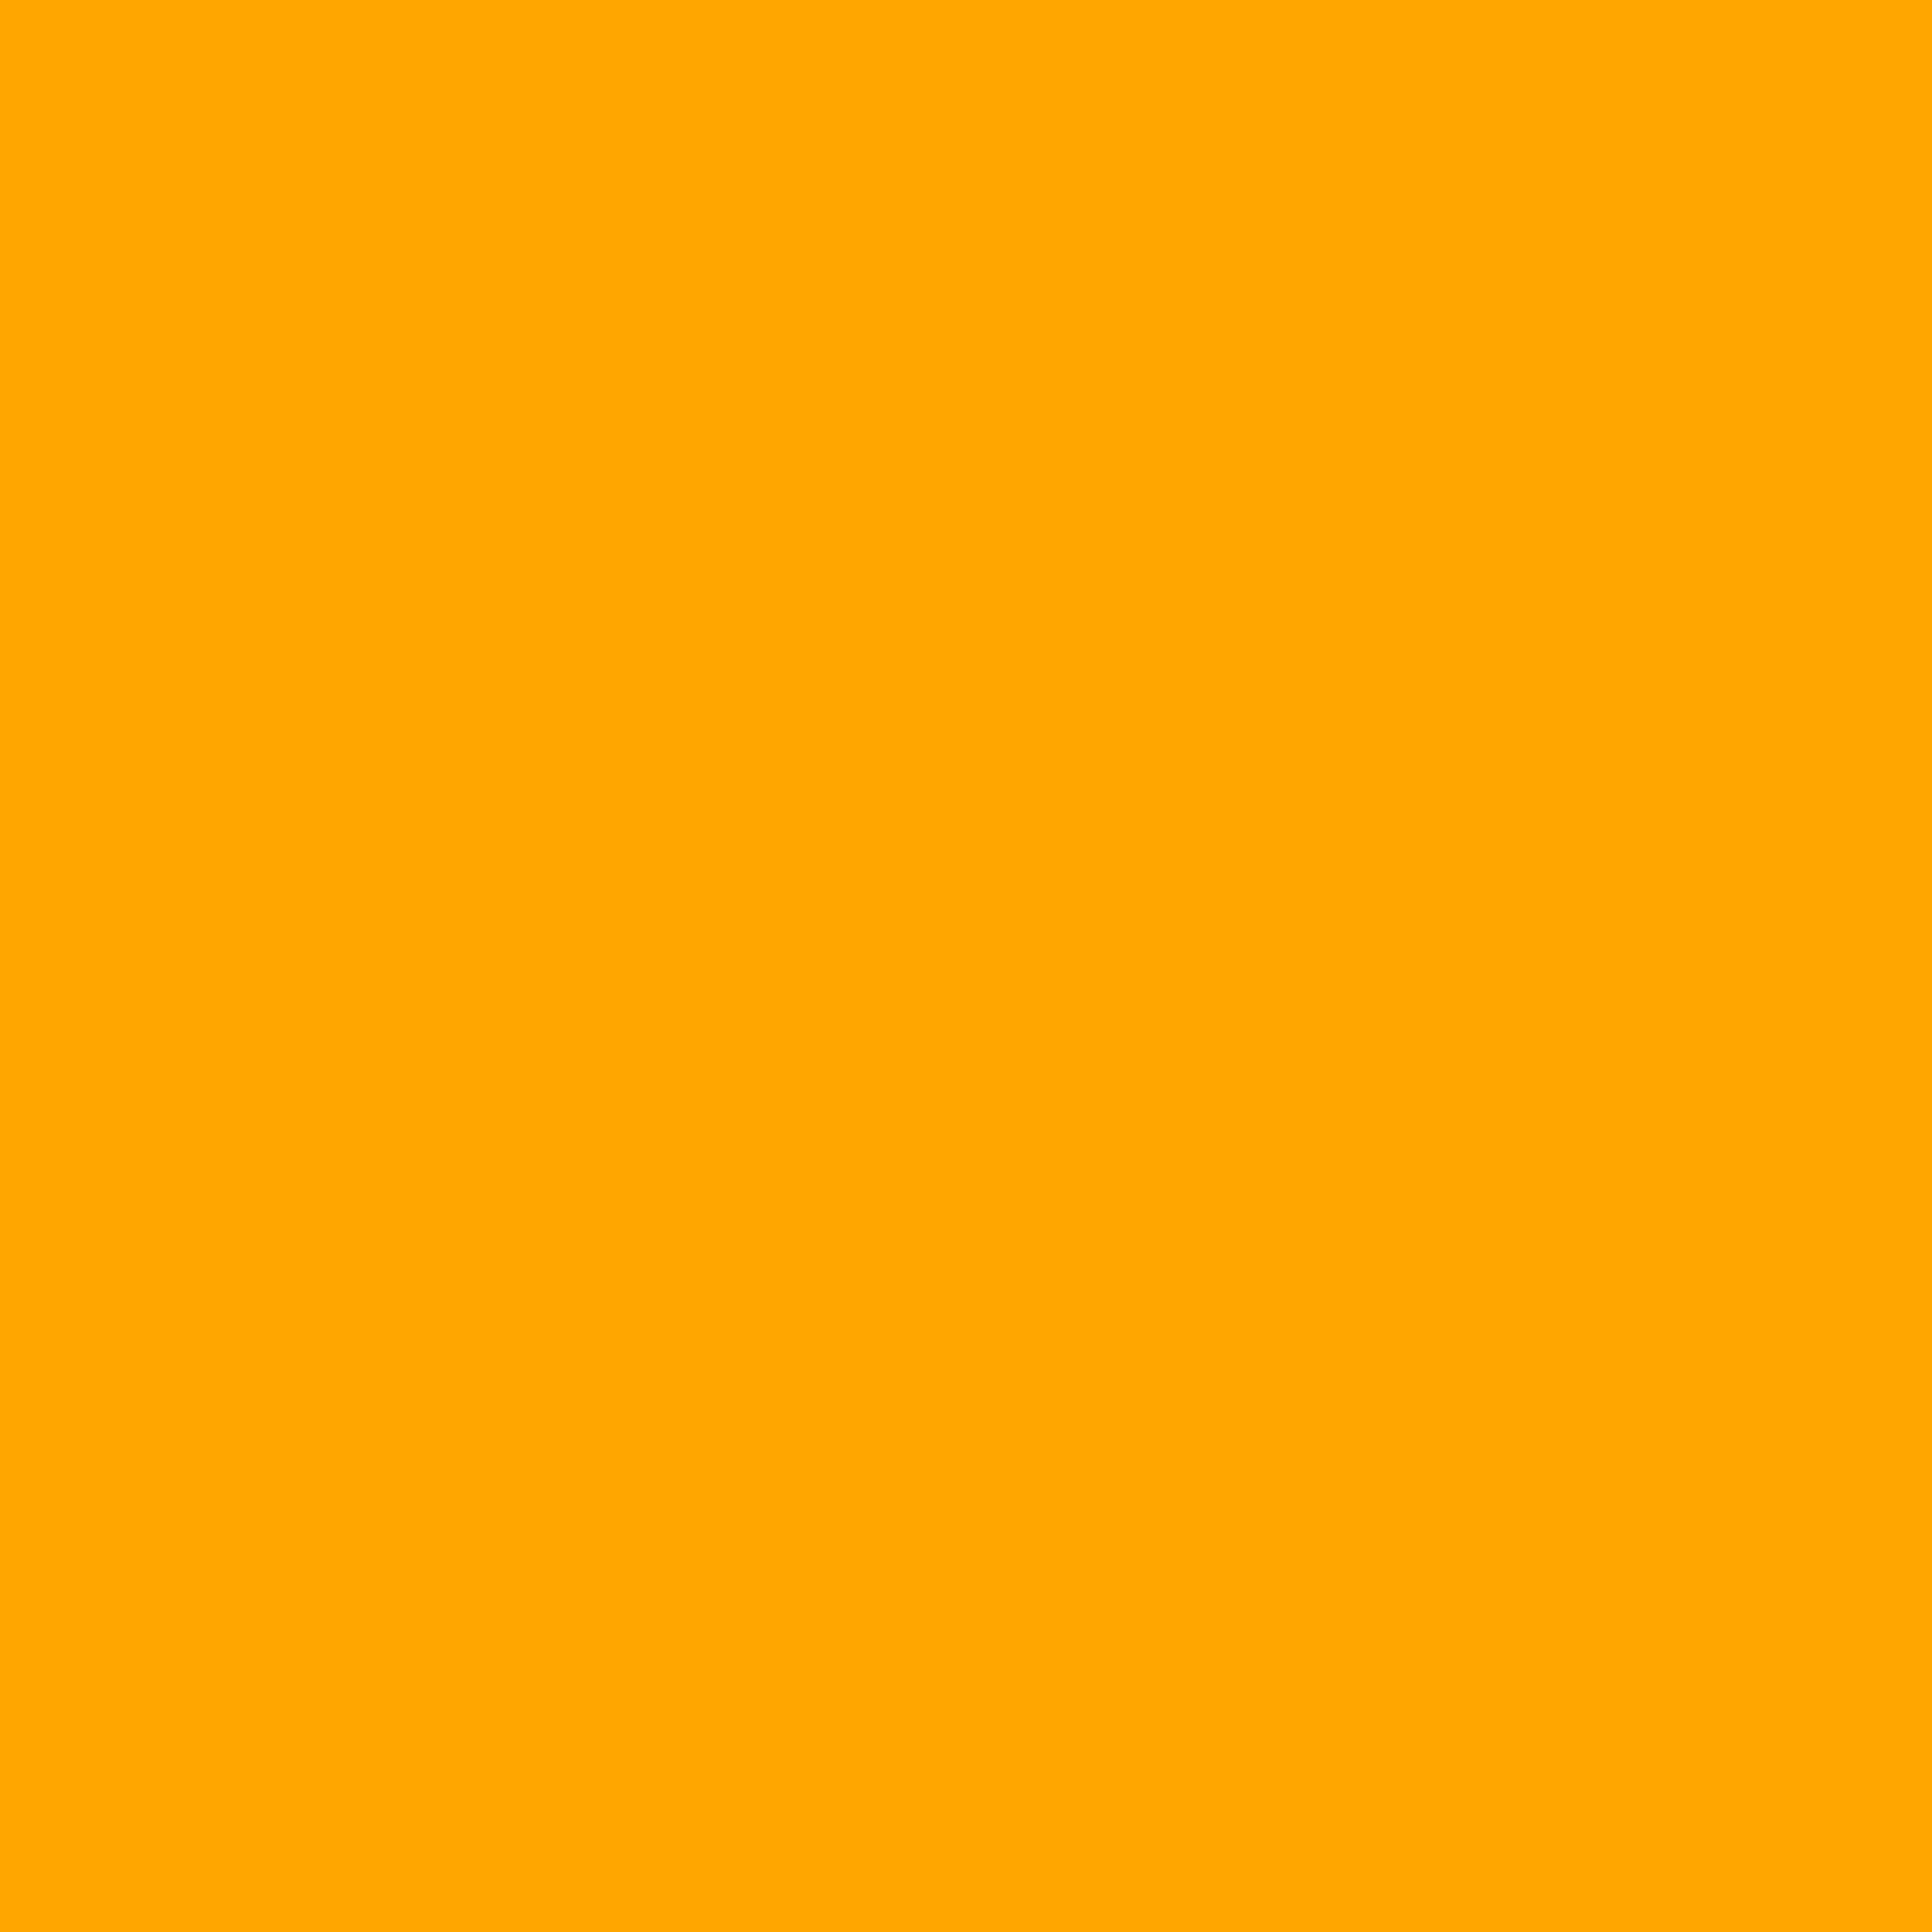 2732x2732 Chrome Yellow Solid Color Background